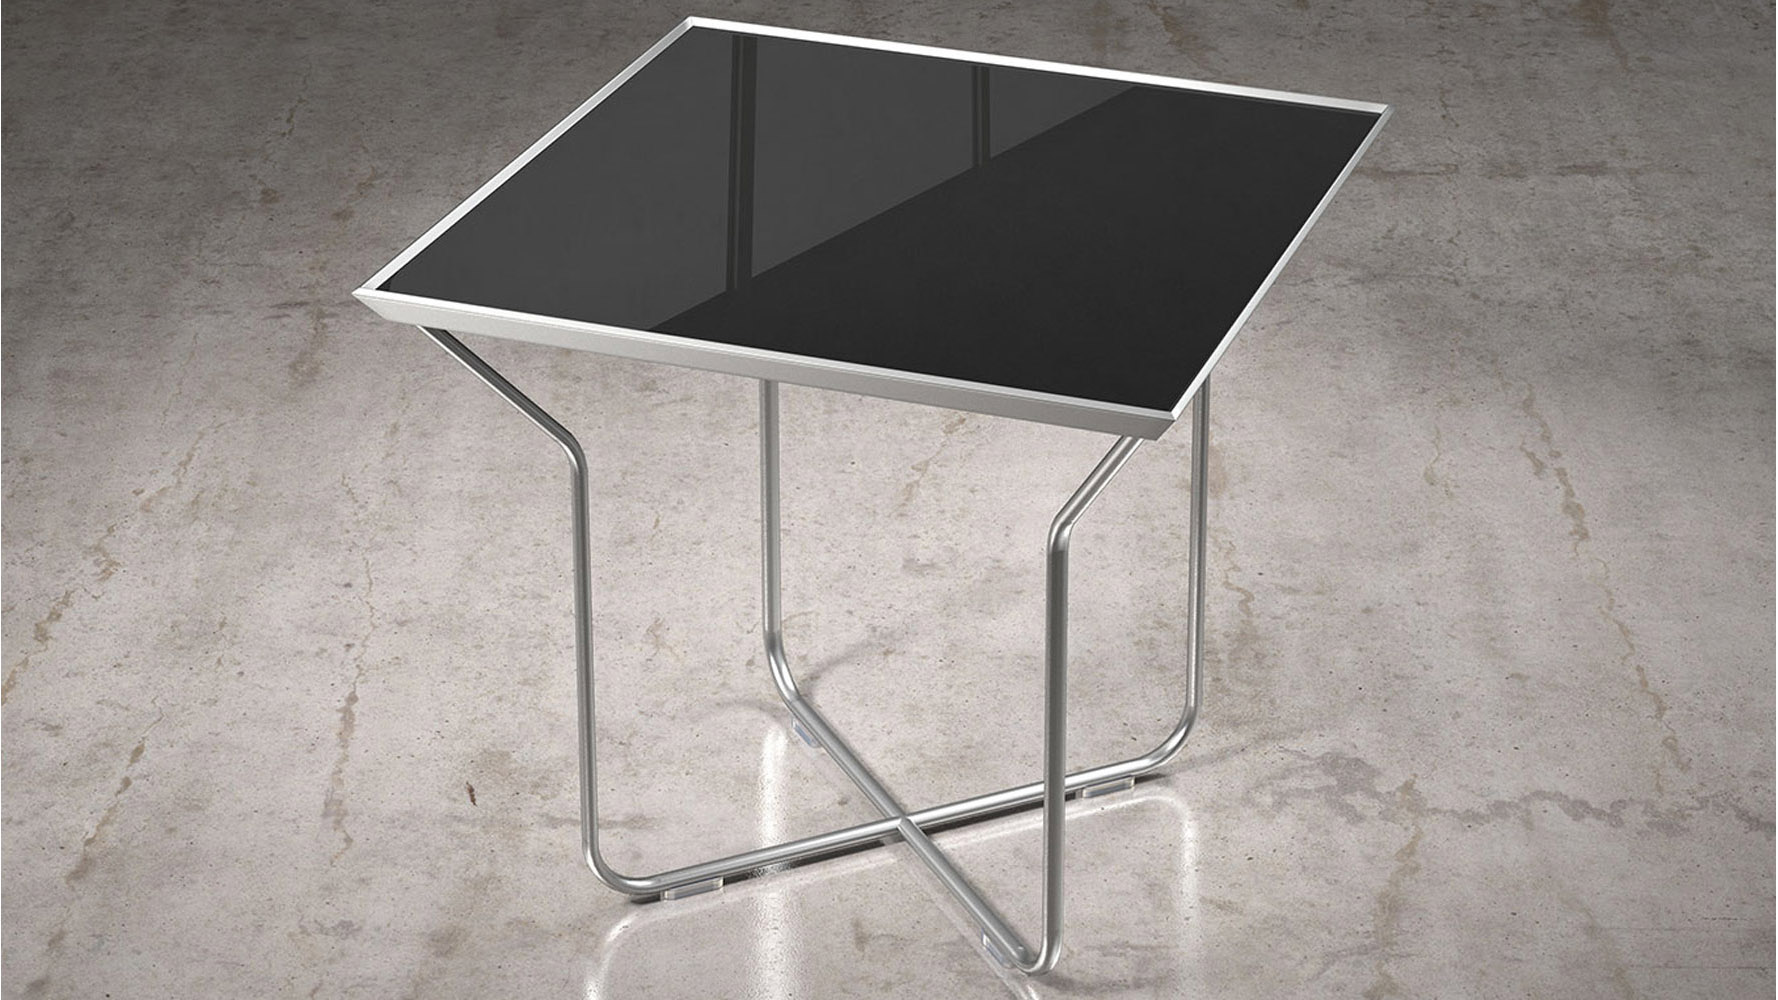 Black Glass Tables products in glass | acrylic,material - accent tables, accent